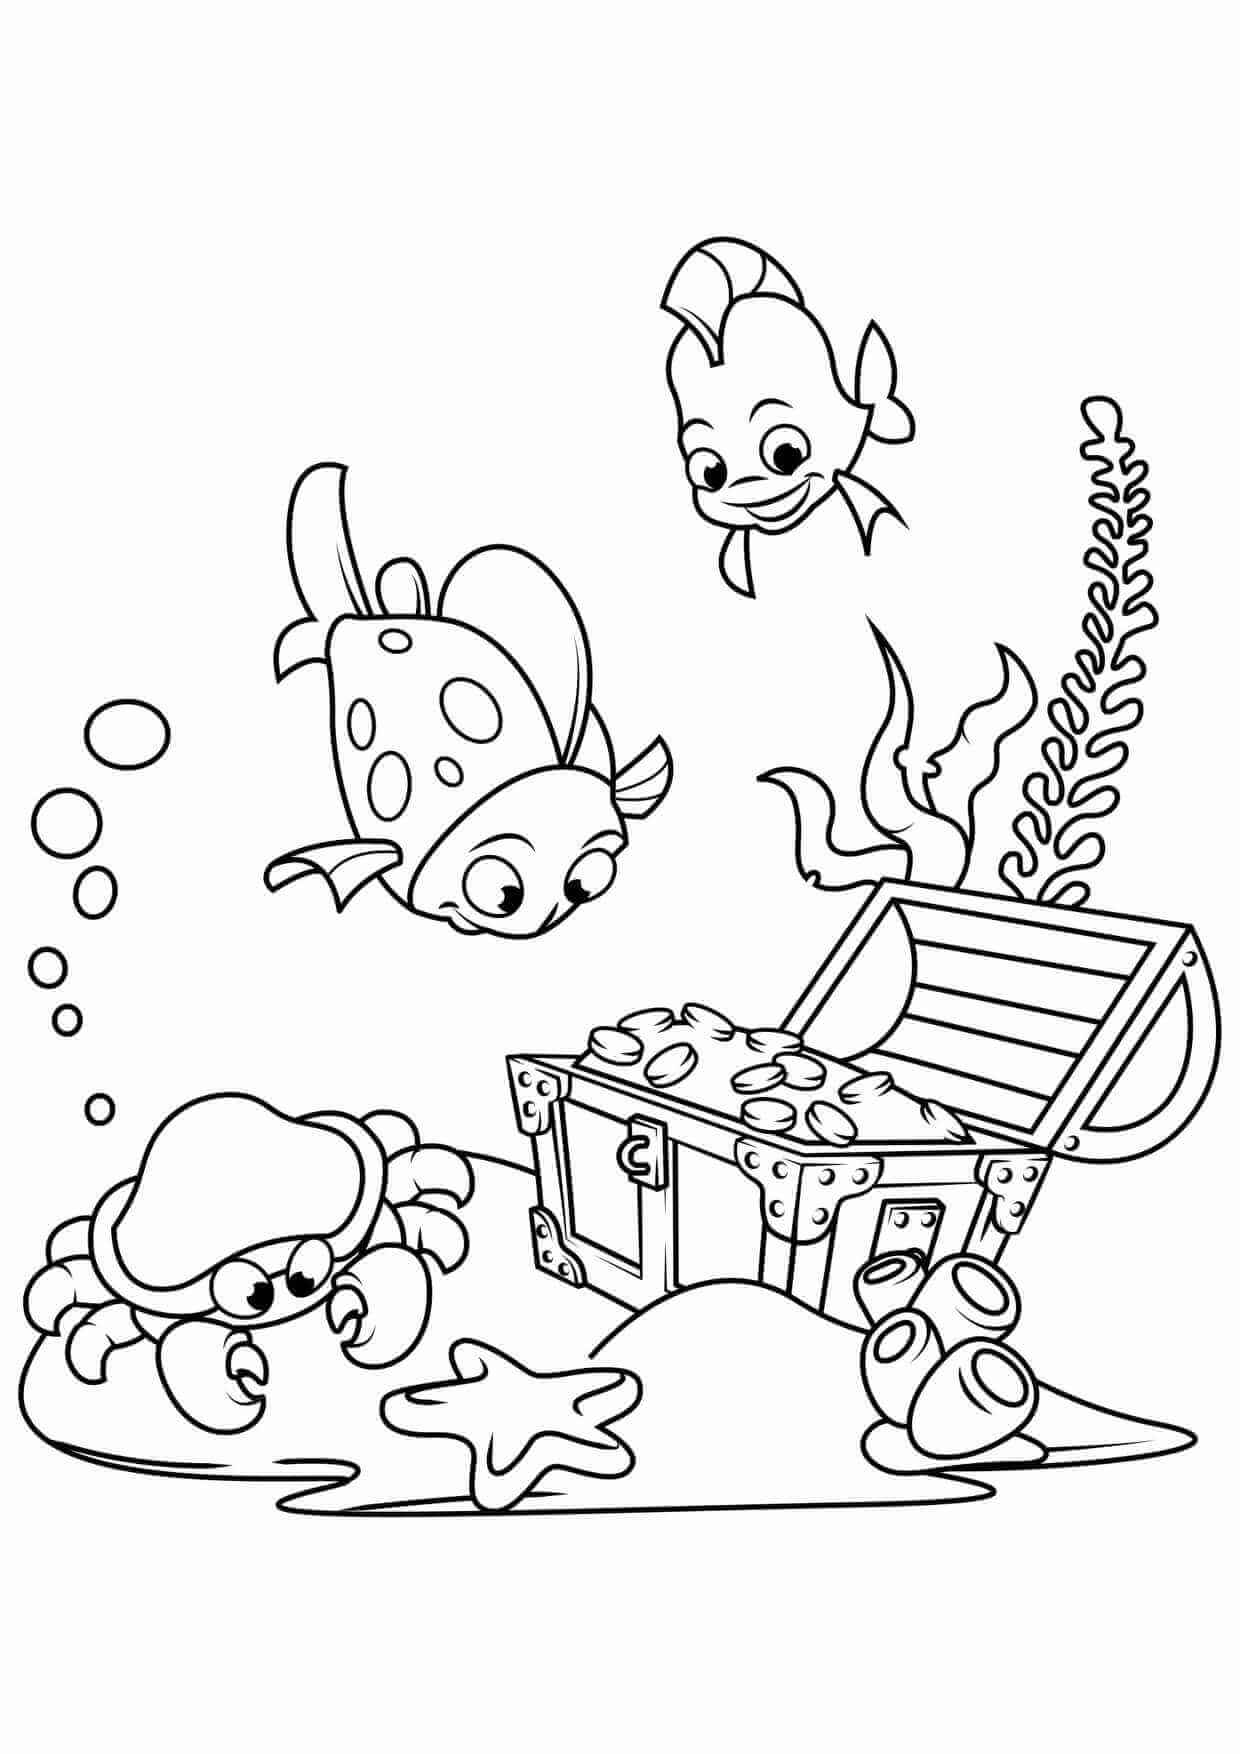 colouring pictures girls free printable coloring pages for girls pictures colouring girls